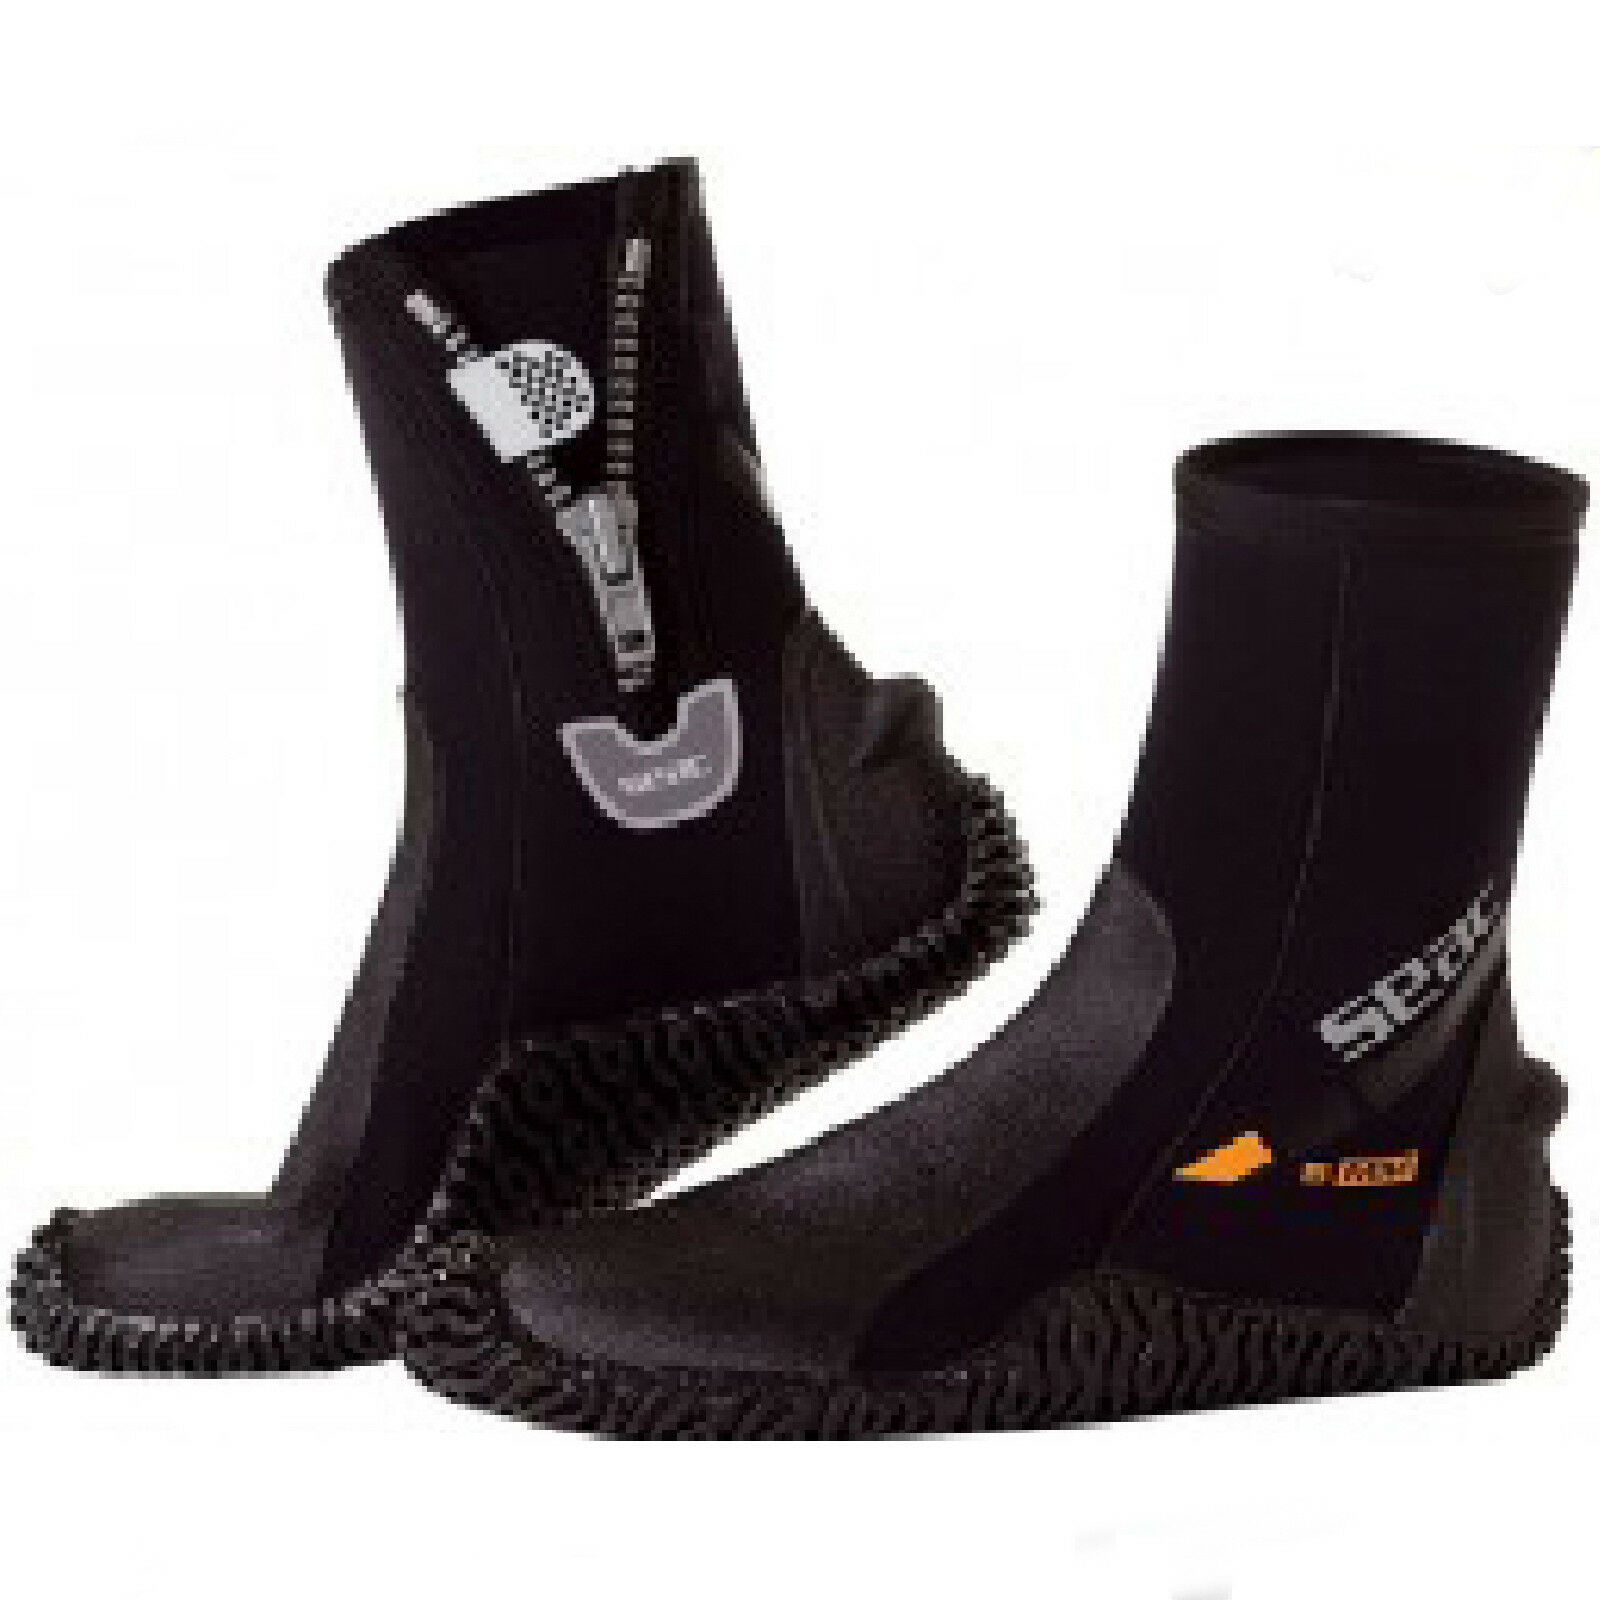 LO3 seac sub  DIVING SURF boots 5mm zip BASIC HD SIZE XS